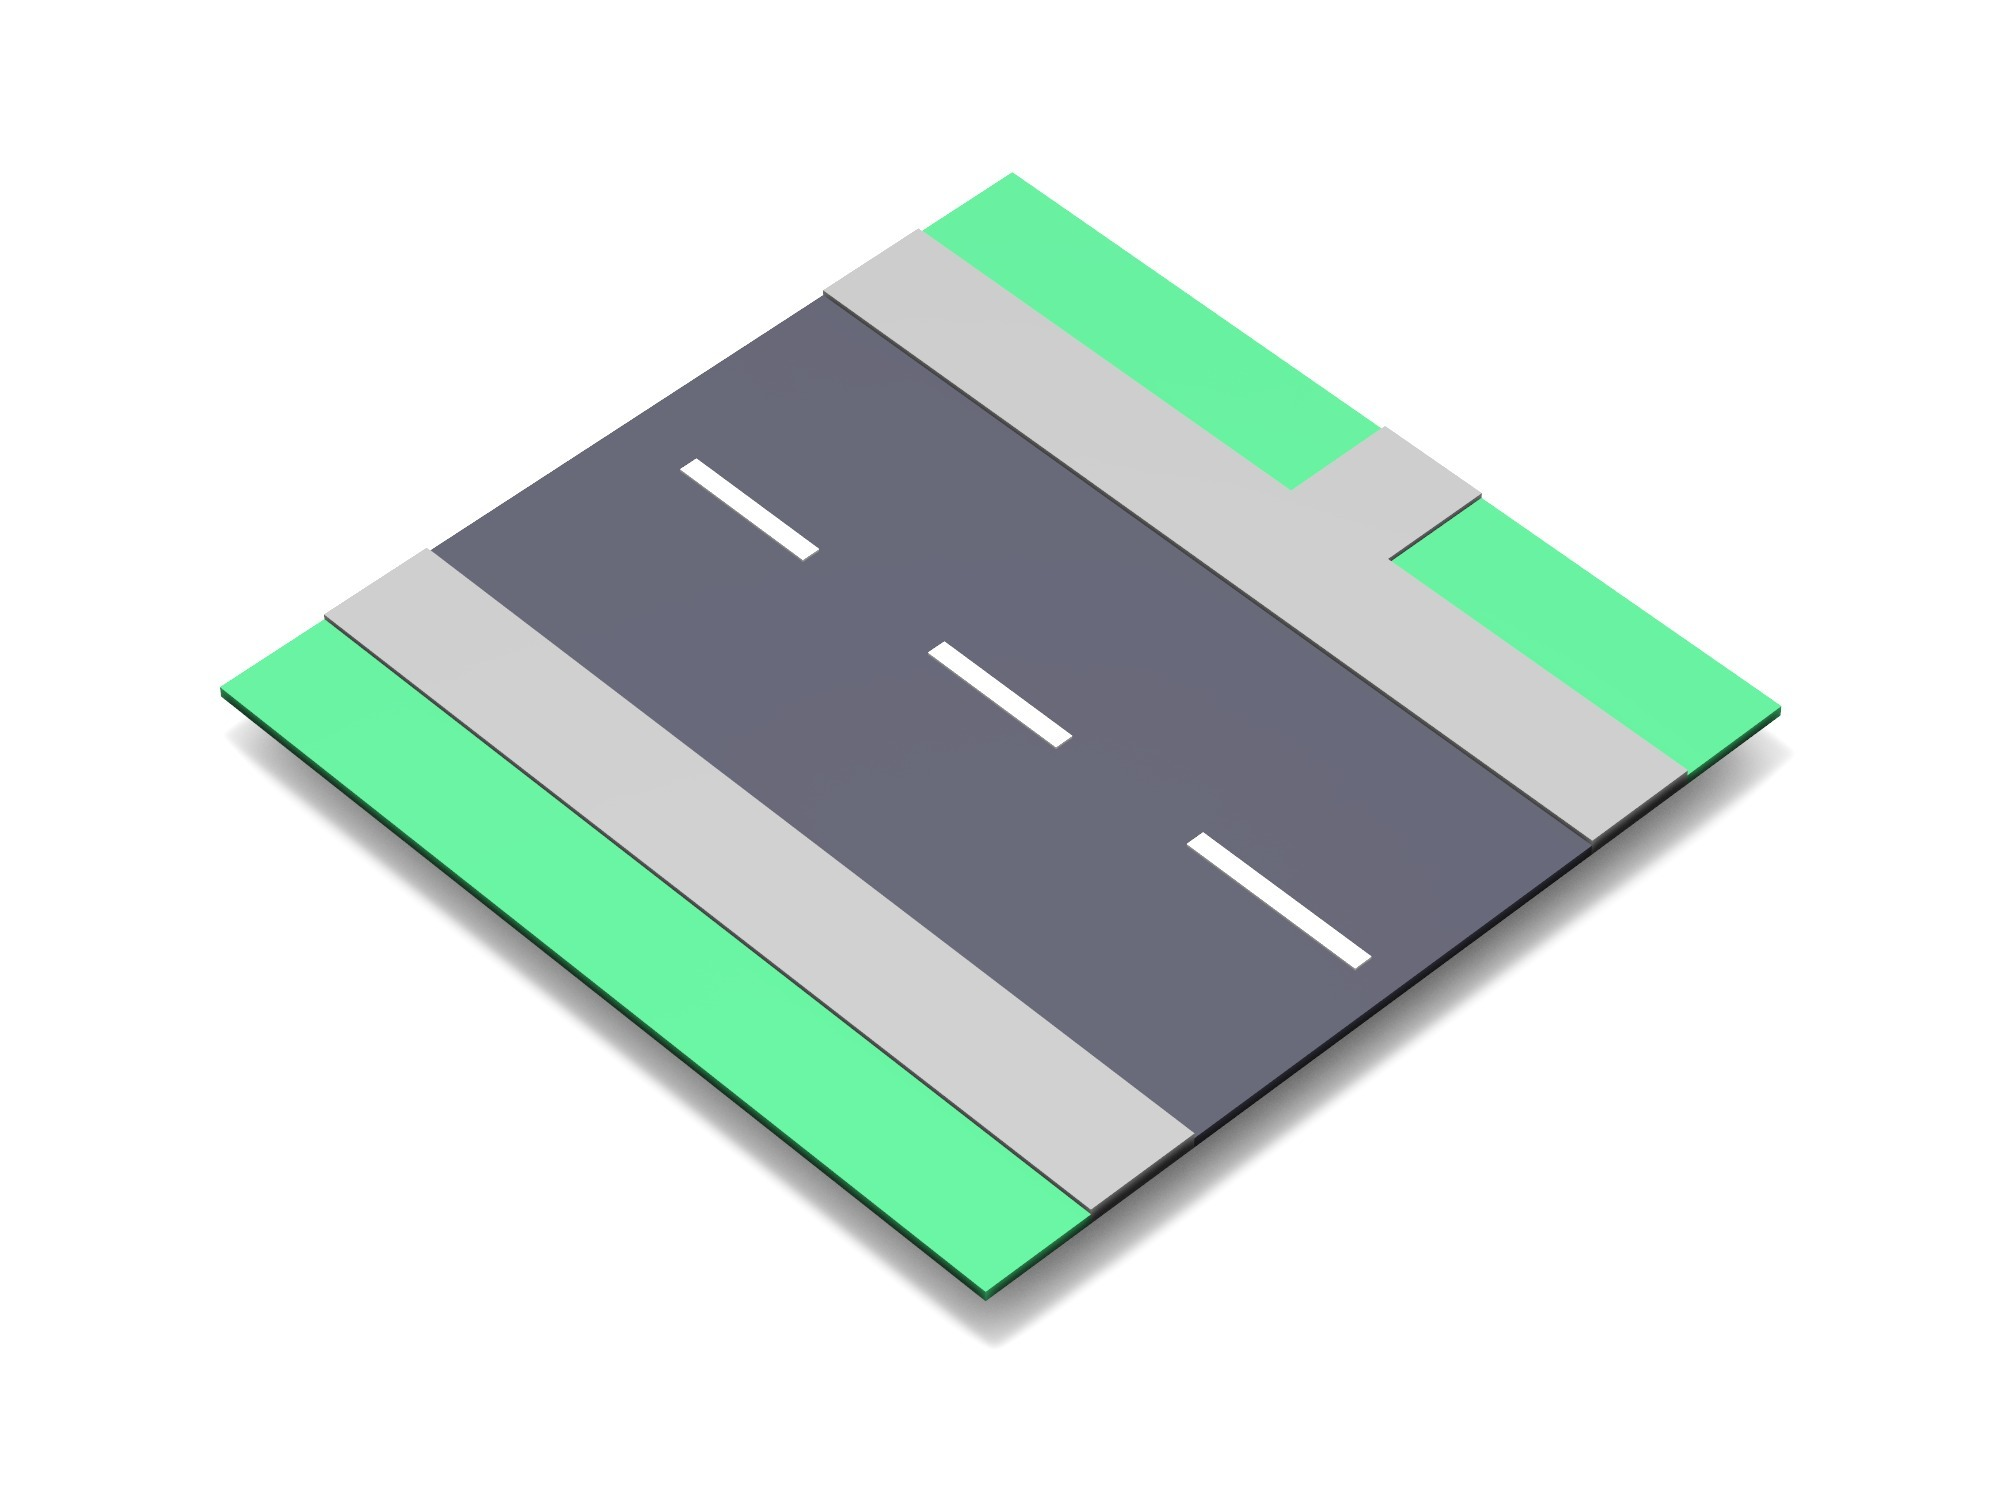 Road with path block - 3D design by Vectary assets Nov 9, 2018